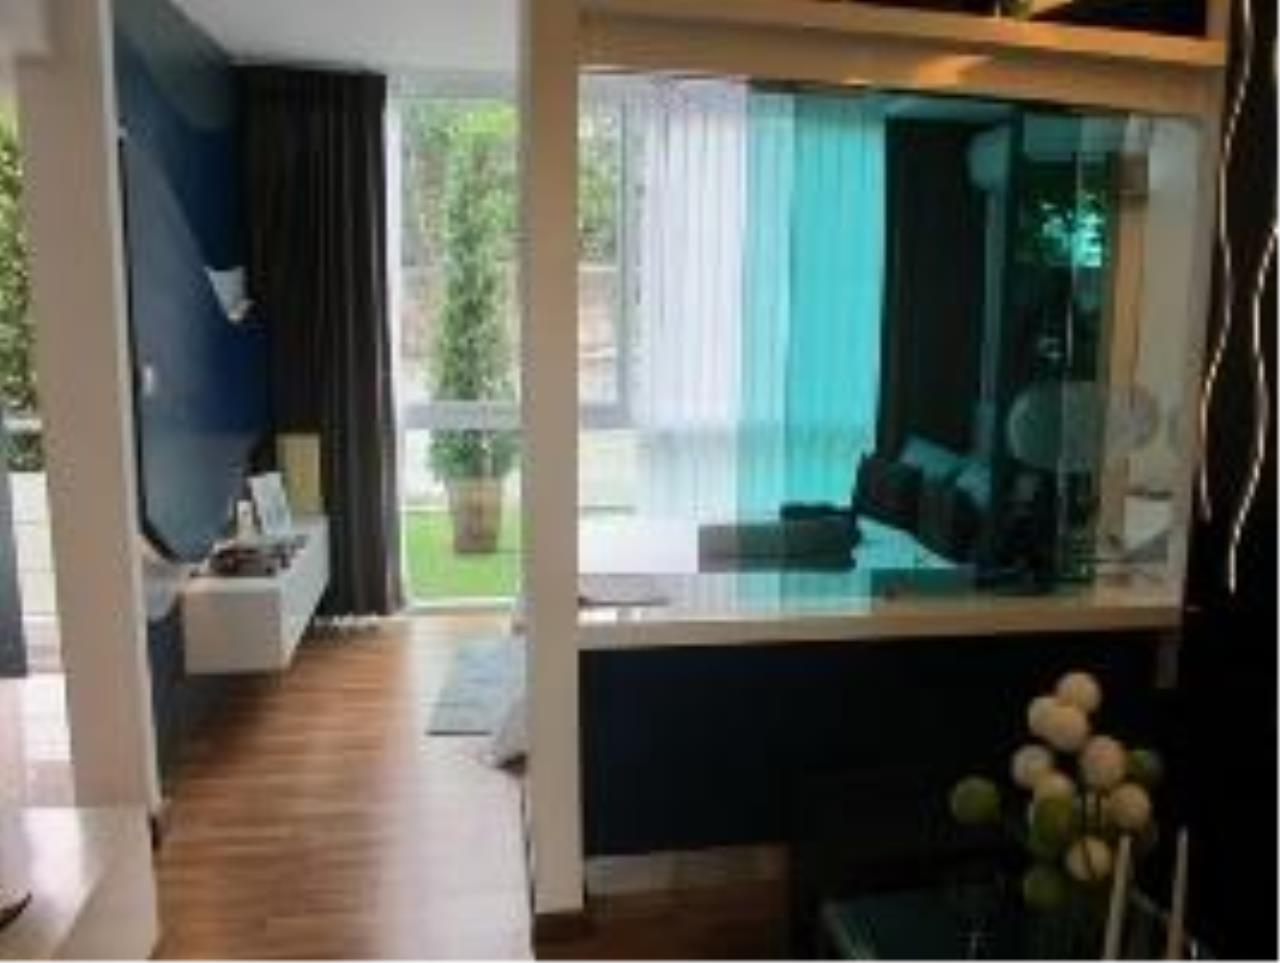 Piri Property Agency's one bedroom  For Sale Chateau in Town - Ratchada 17 2